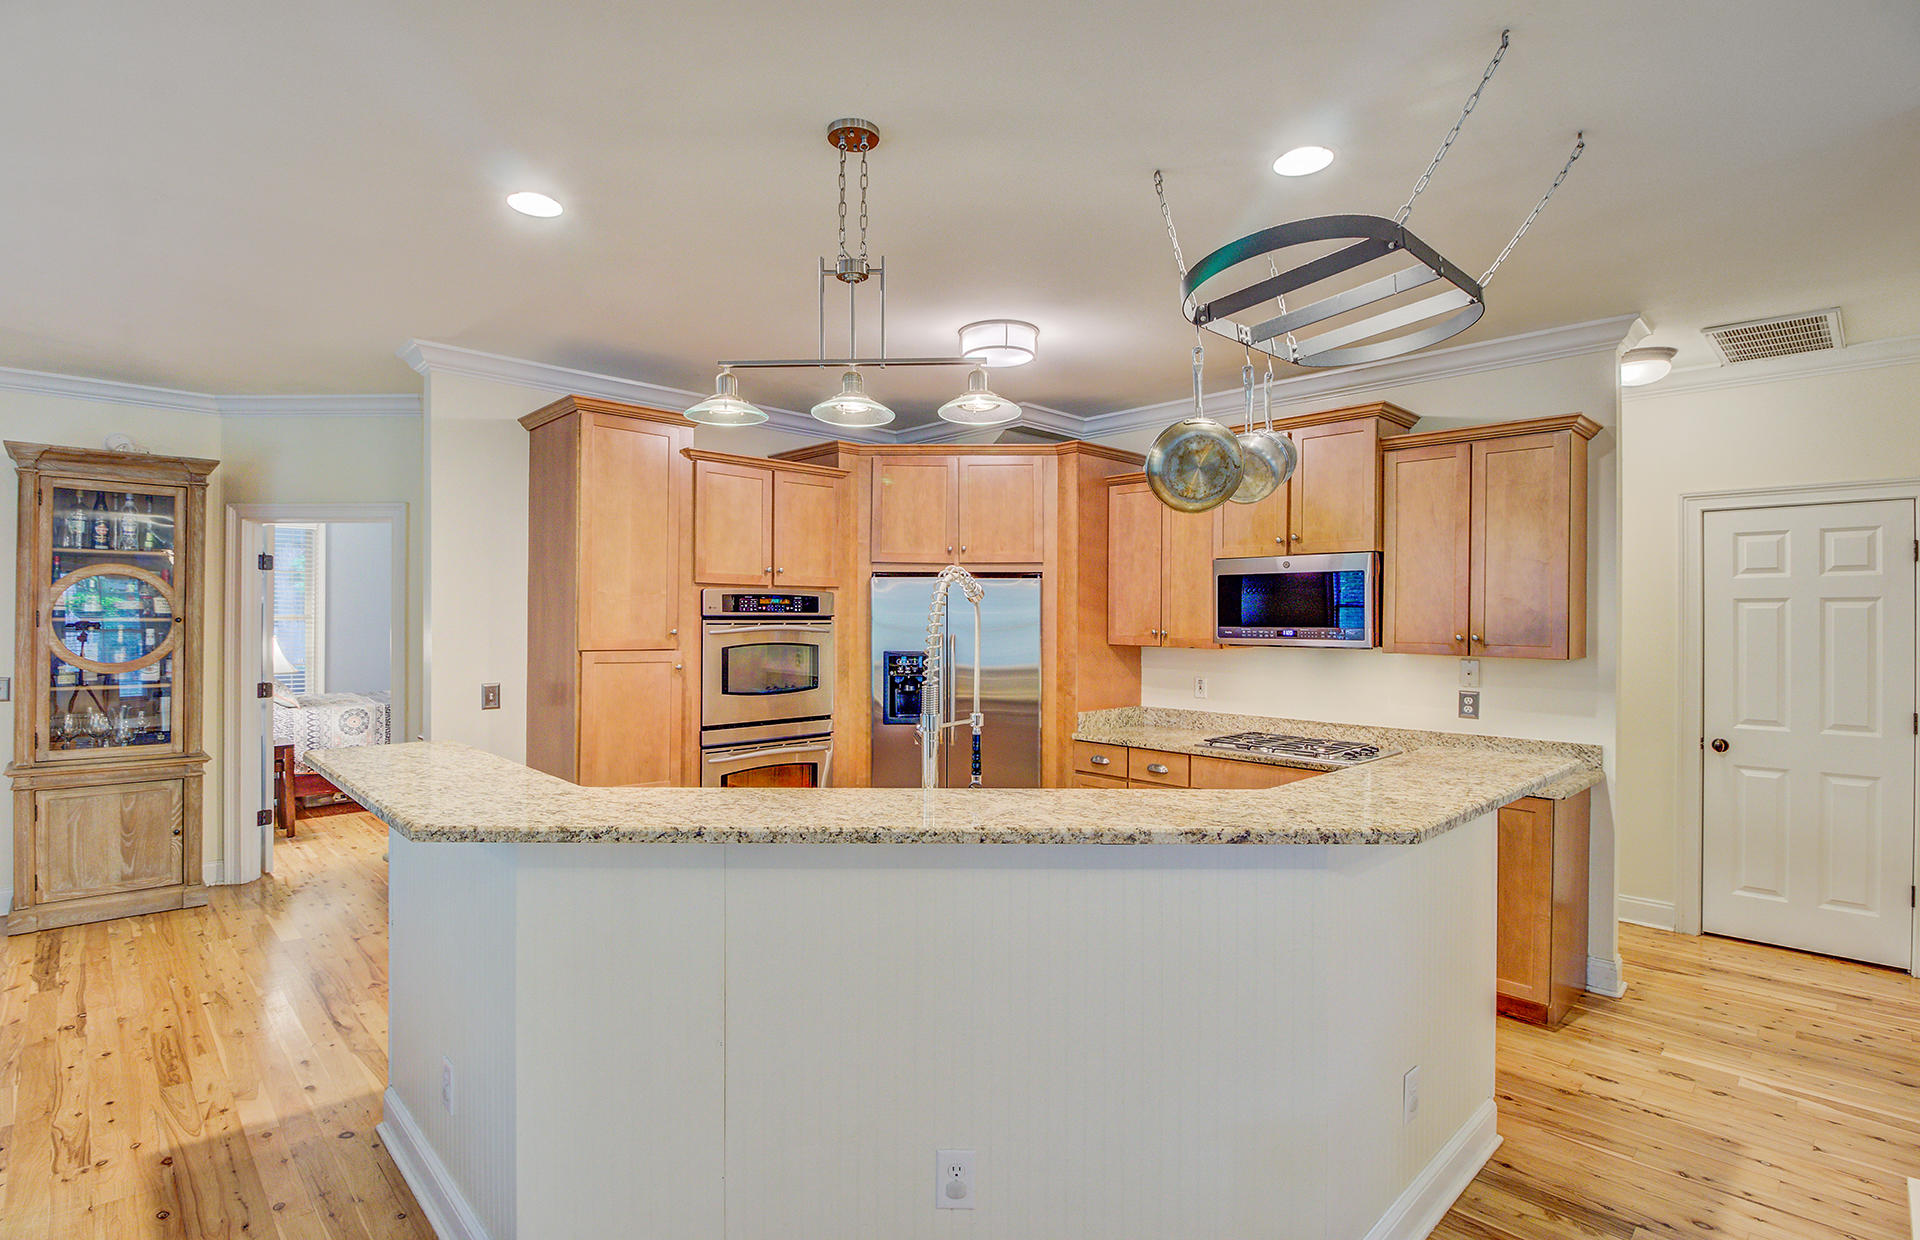 The Villages In St Johns Woods Homes For Sale - 5032 Coral Reef, Johns Island, SC - 28